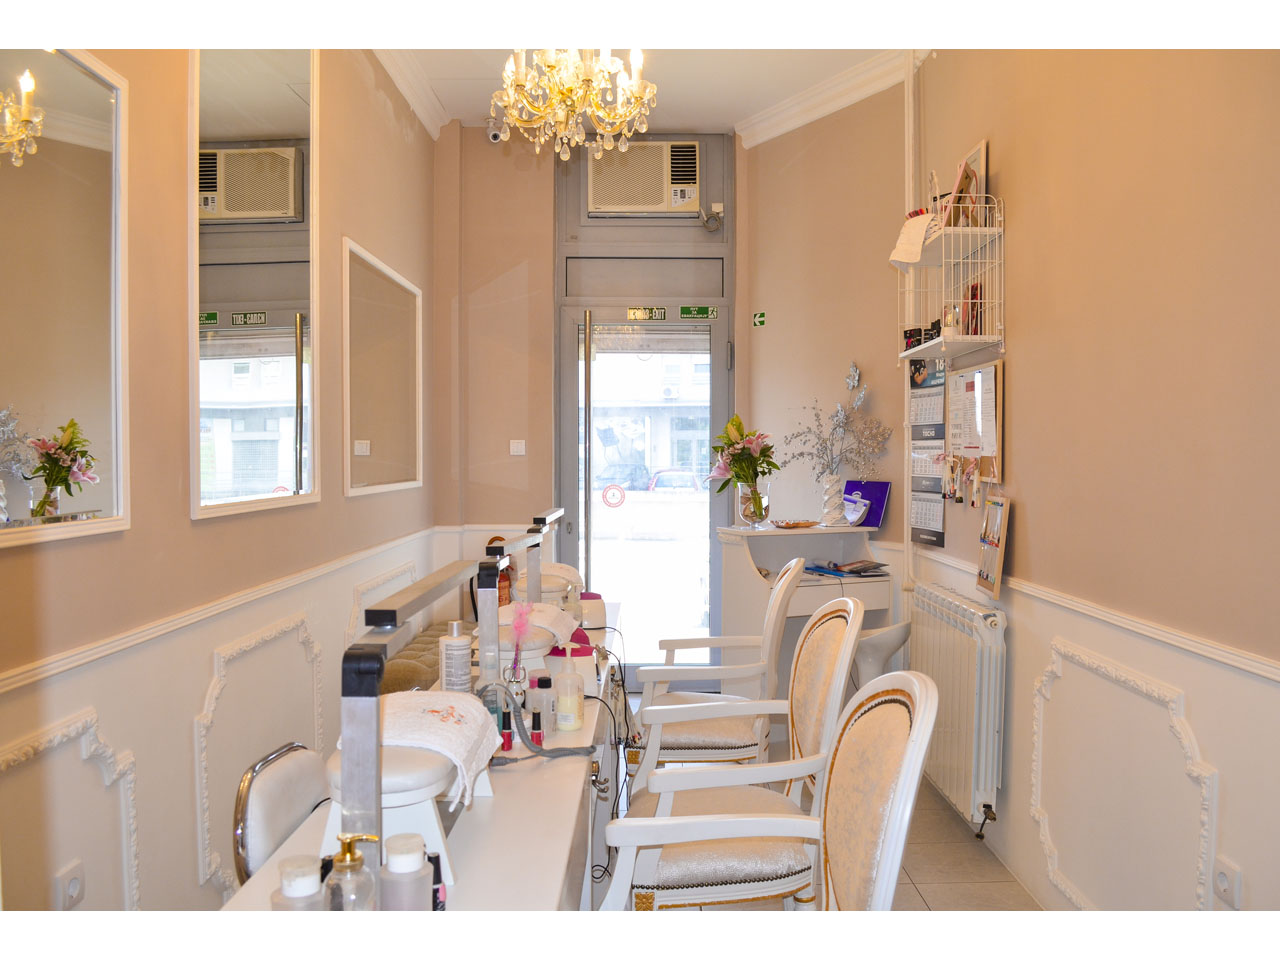 RUSTIK NAILS Manicures, pedicurists Beograd